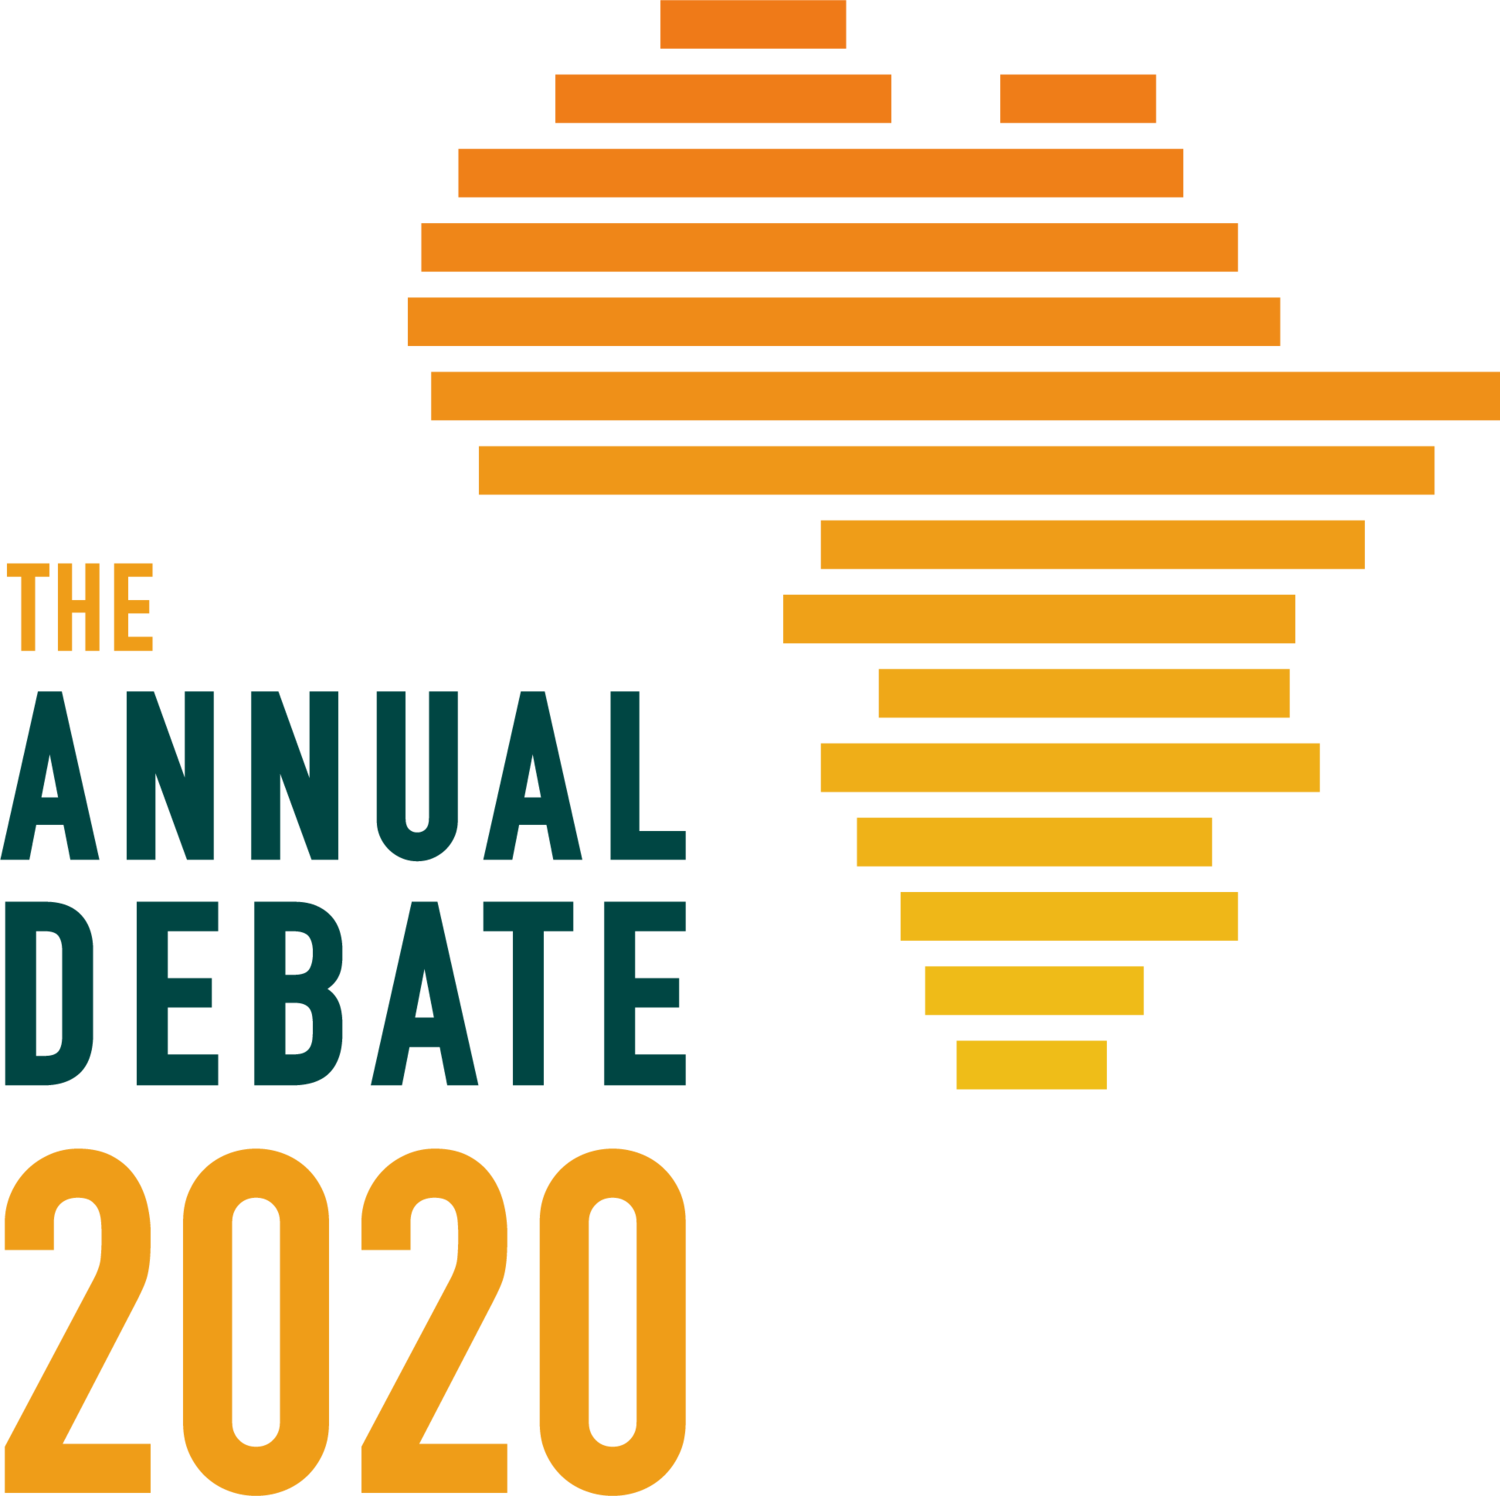 The Annual Debate | Africa's leading investment forum